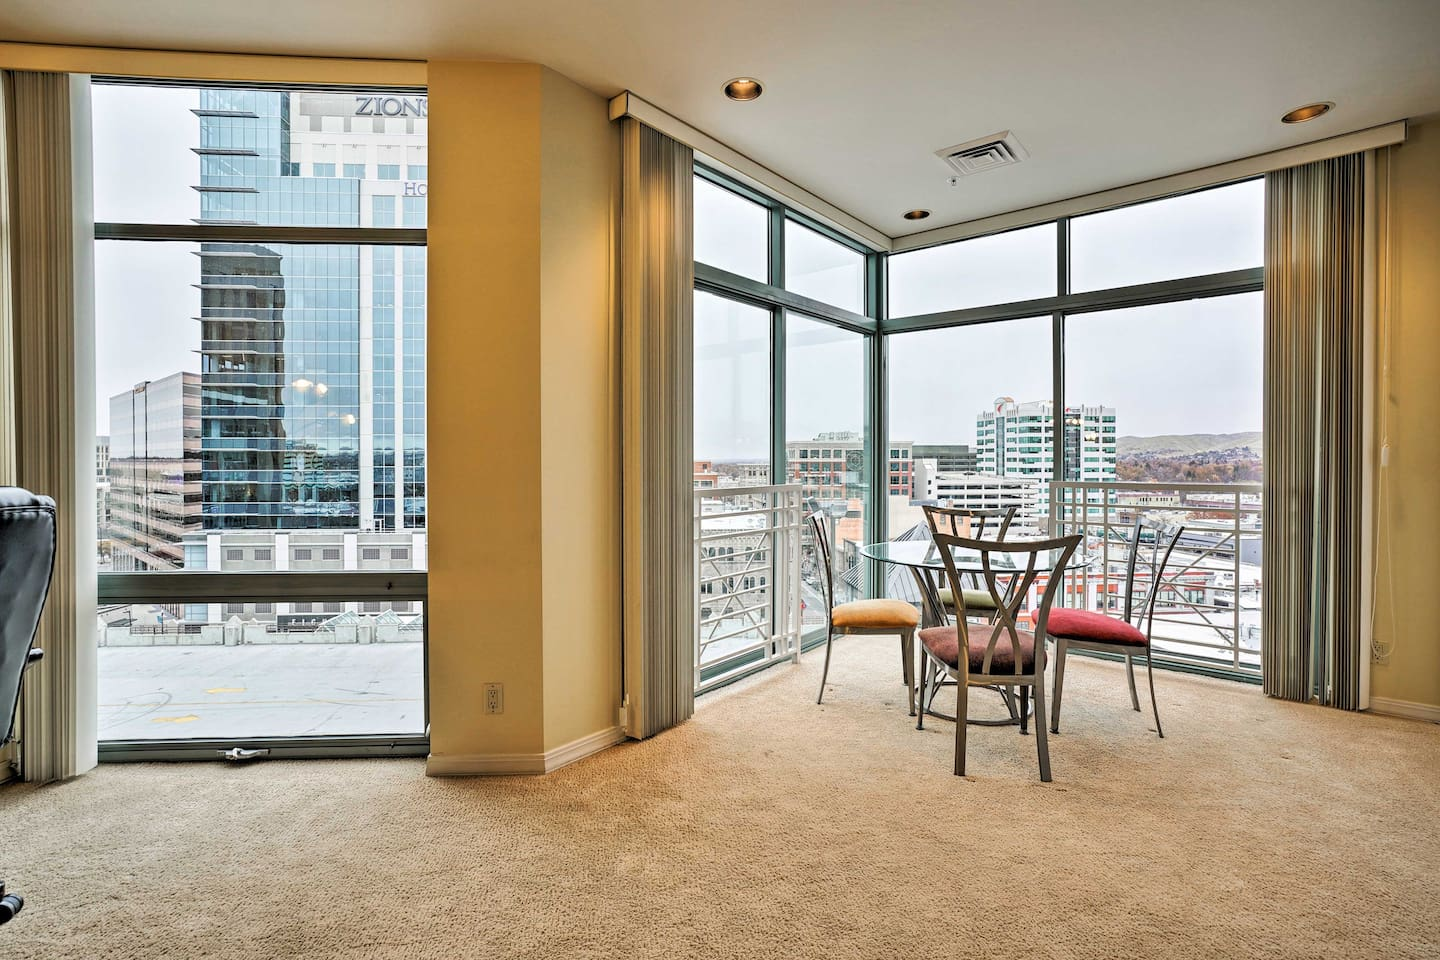 Experience downtown living at its finest at this high-rise condo in Boise!